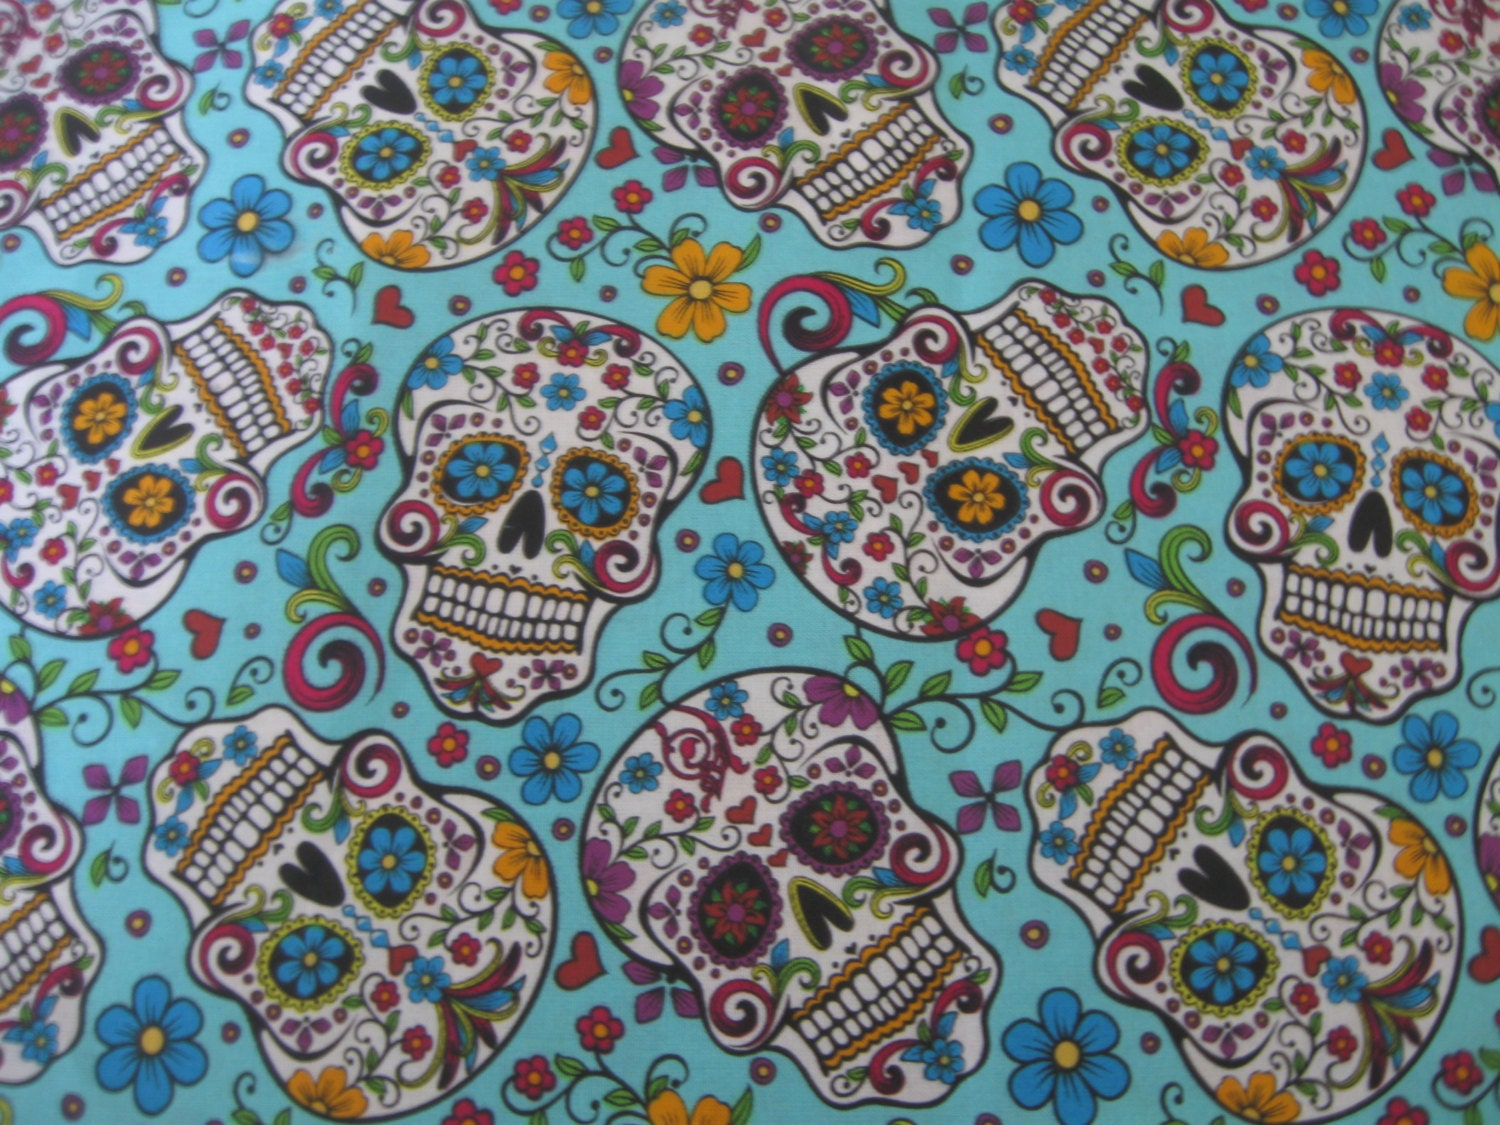 Sale sugar skulls teal fabric by the yard fabric piece for Cloth for sale by the yard